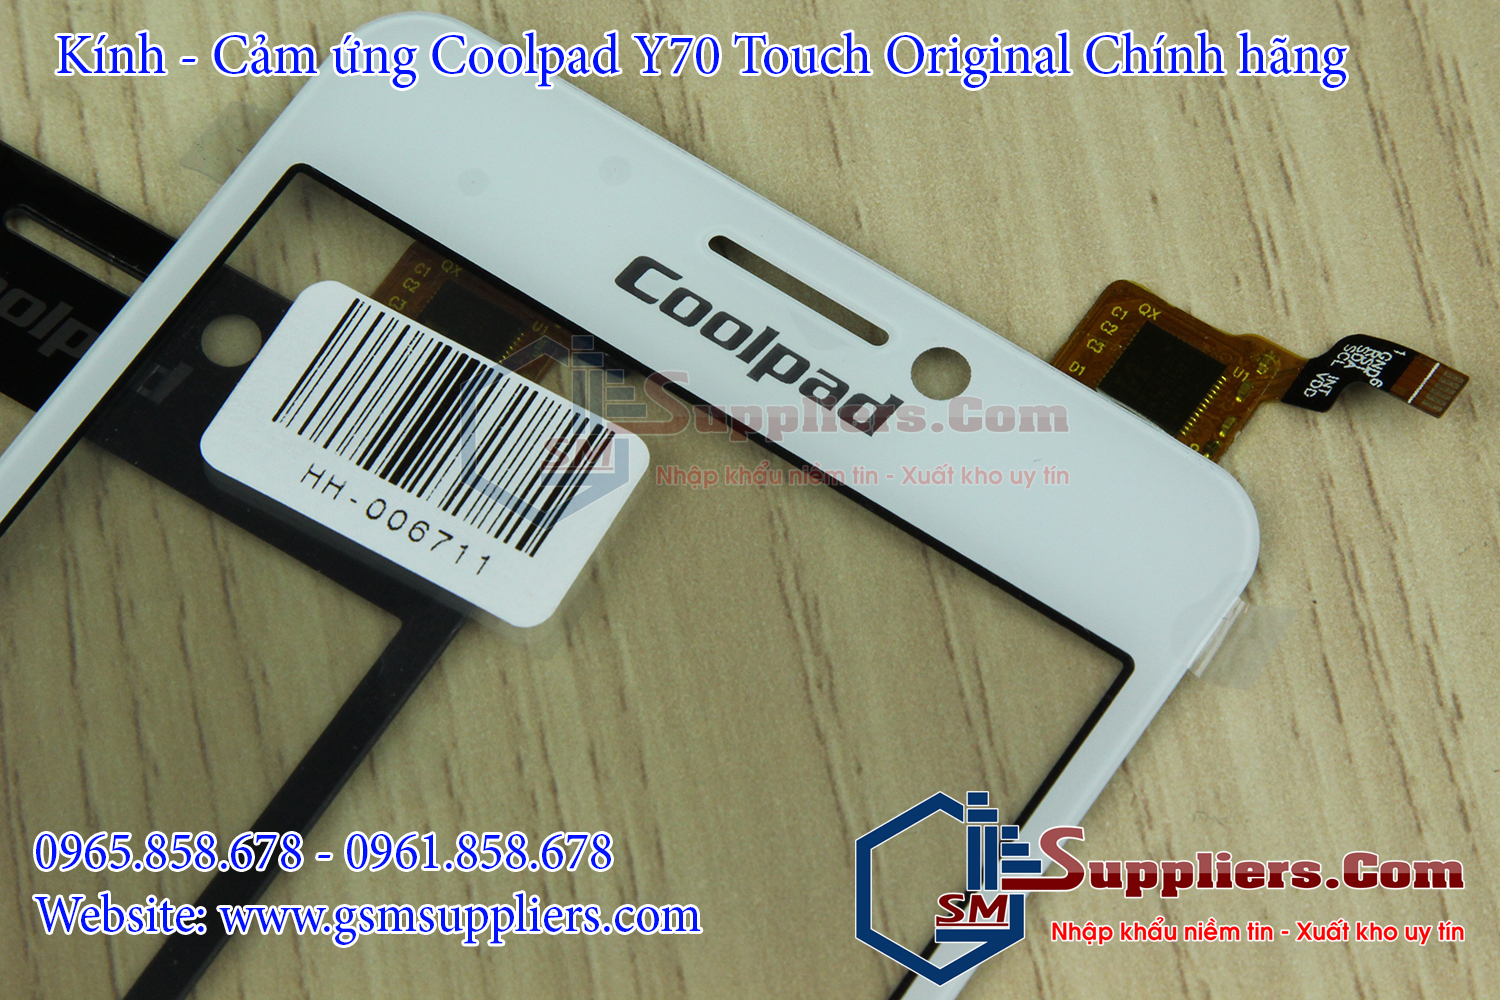 cam ung coolpad y70 hang chinh hang gia re tai ha noi 1